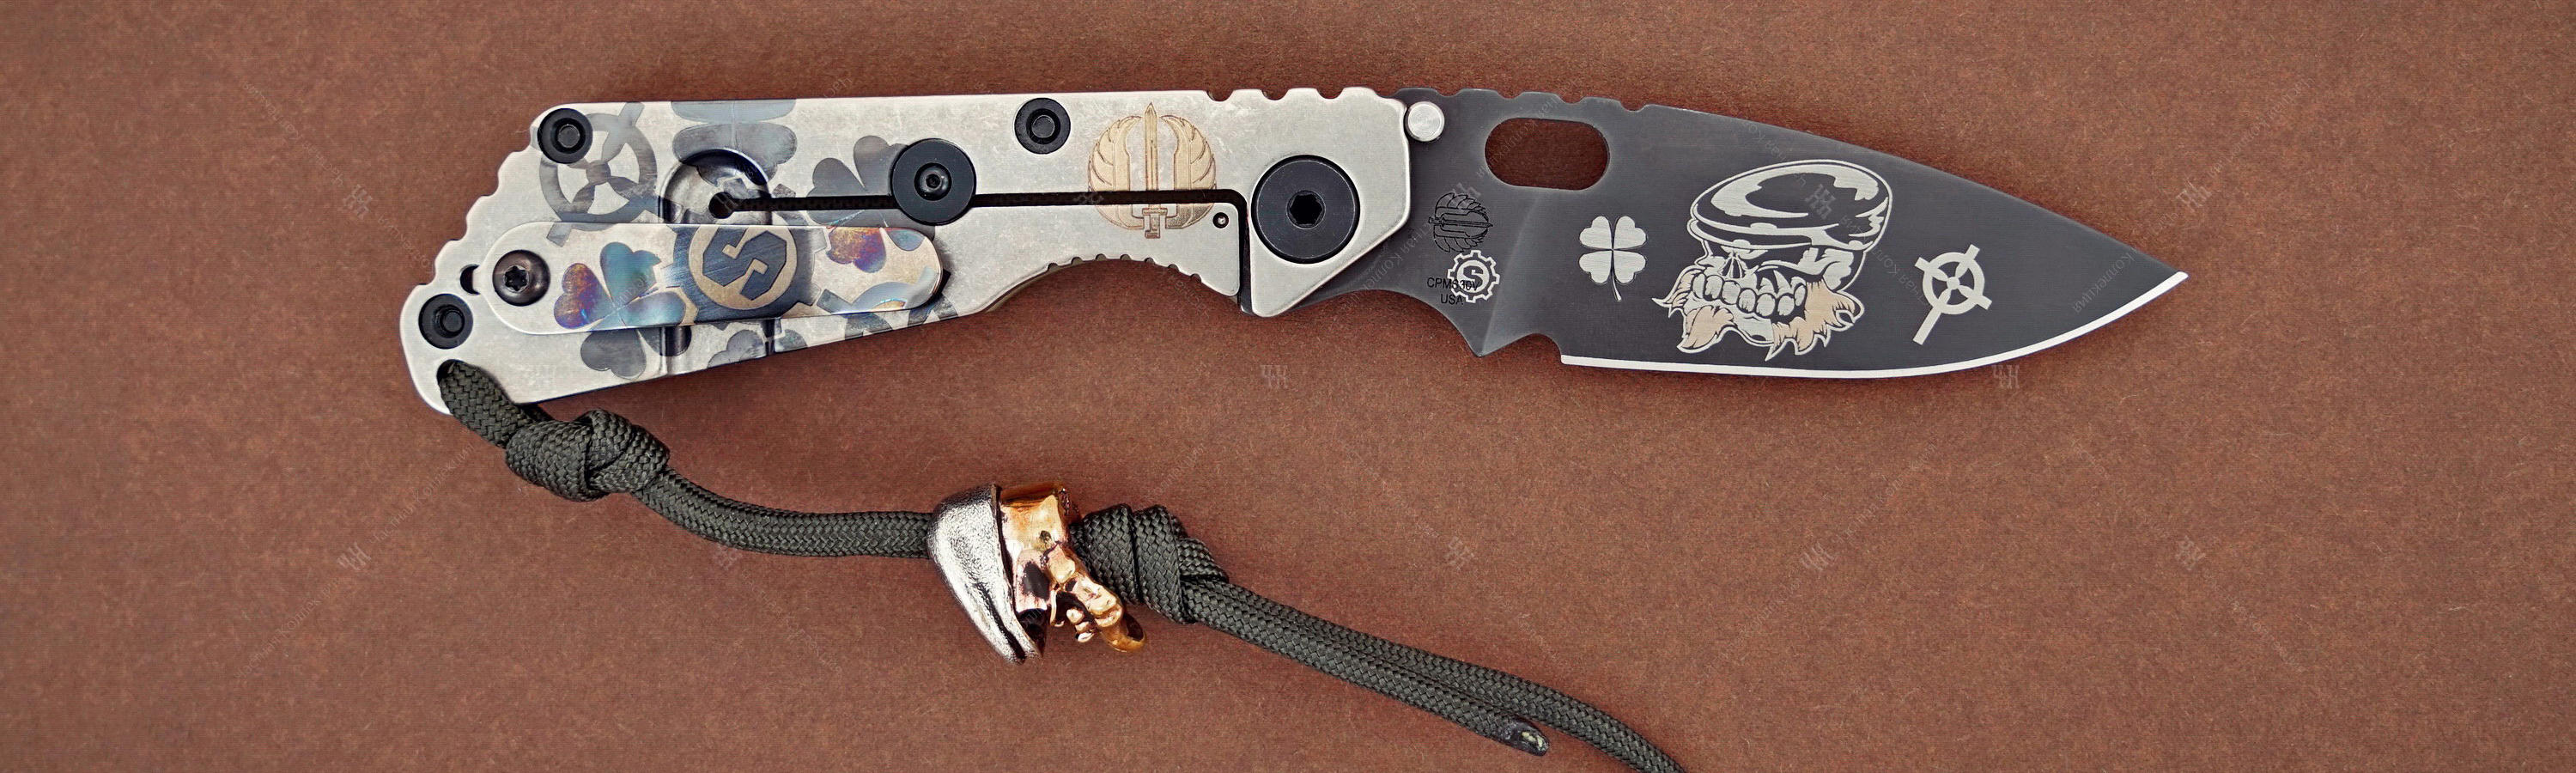 collectible folding knife